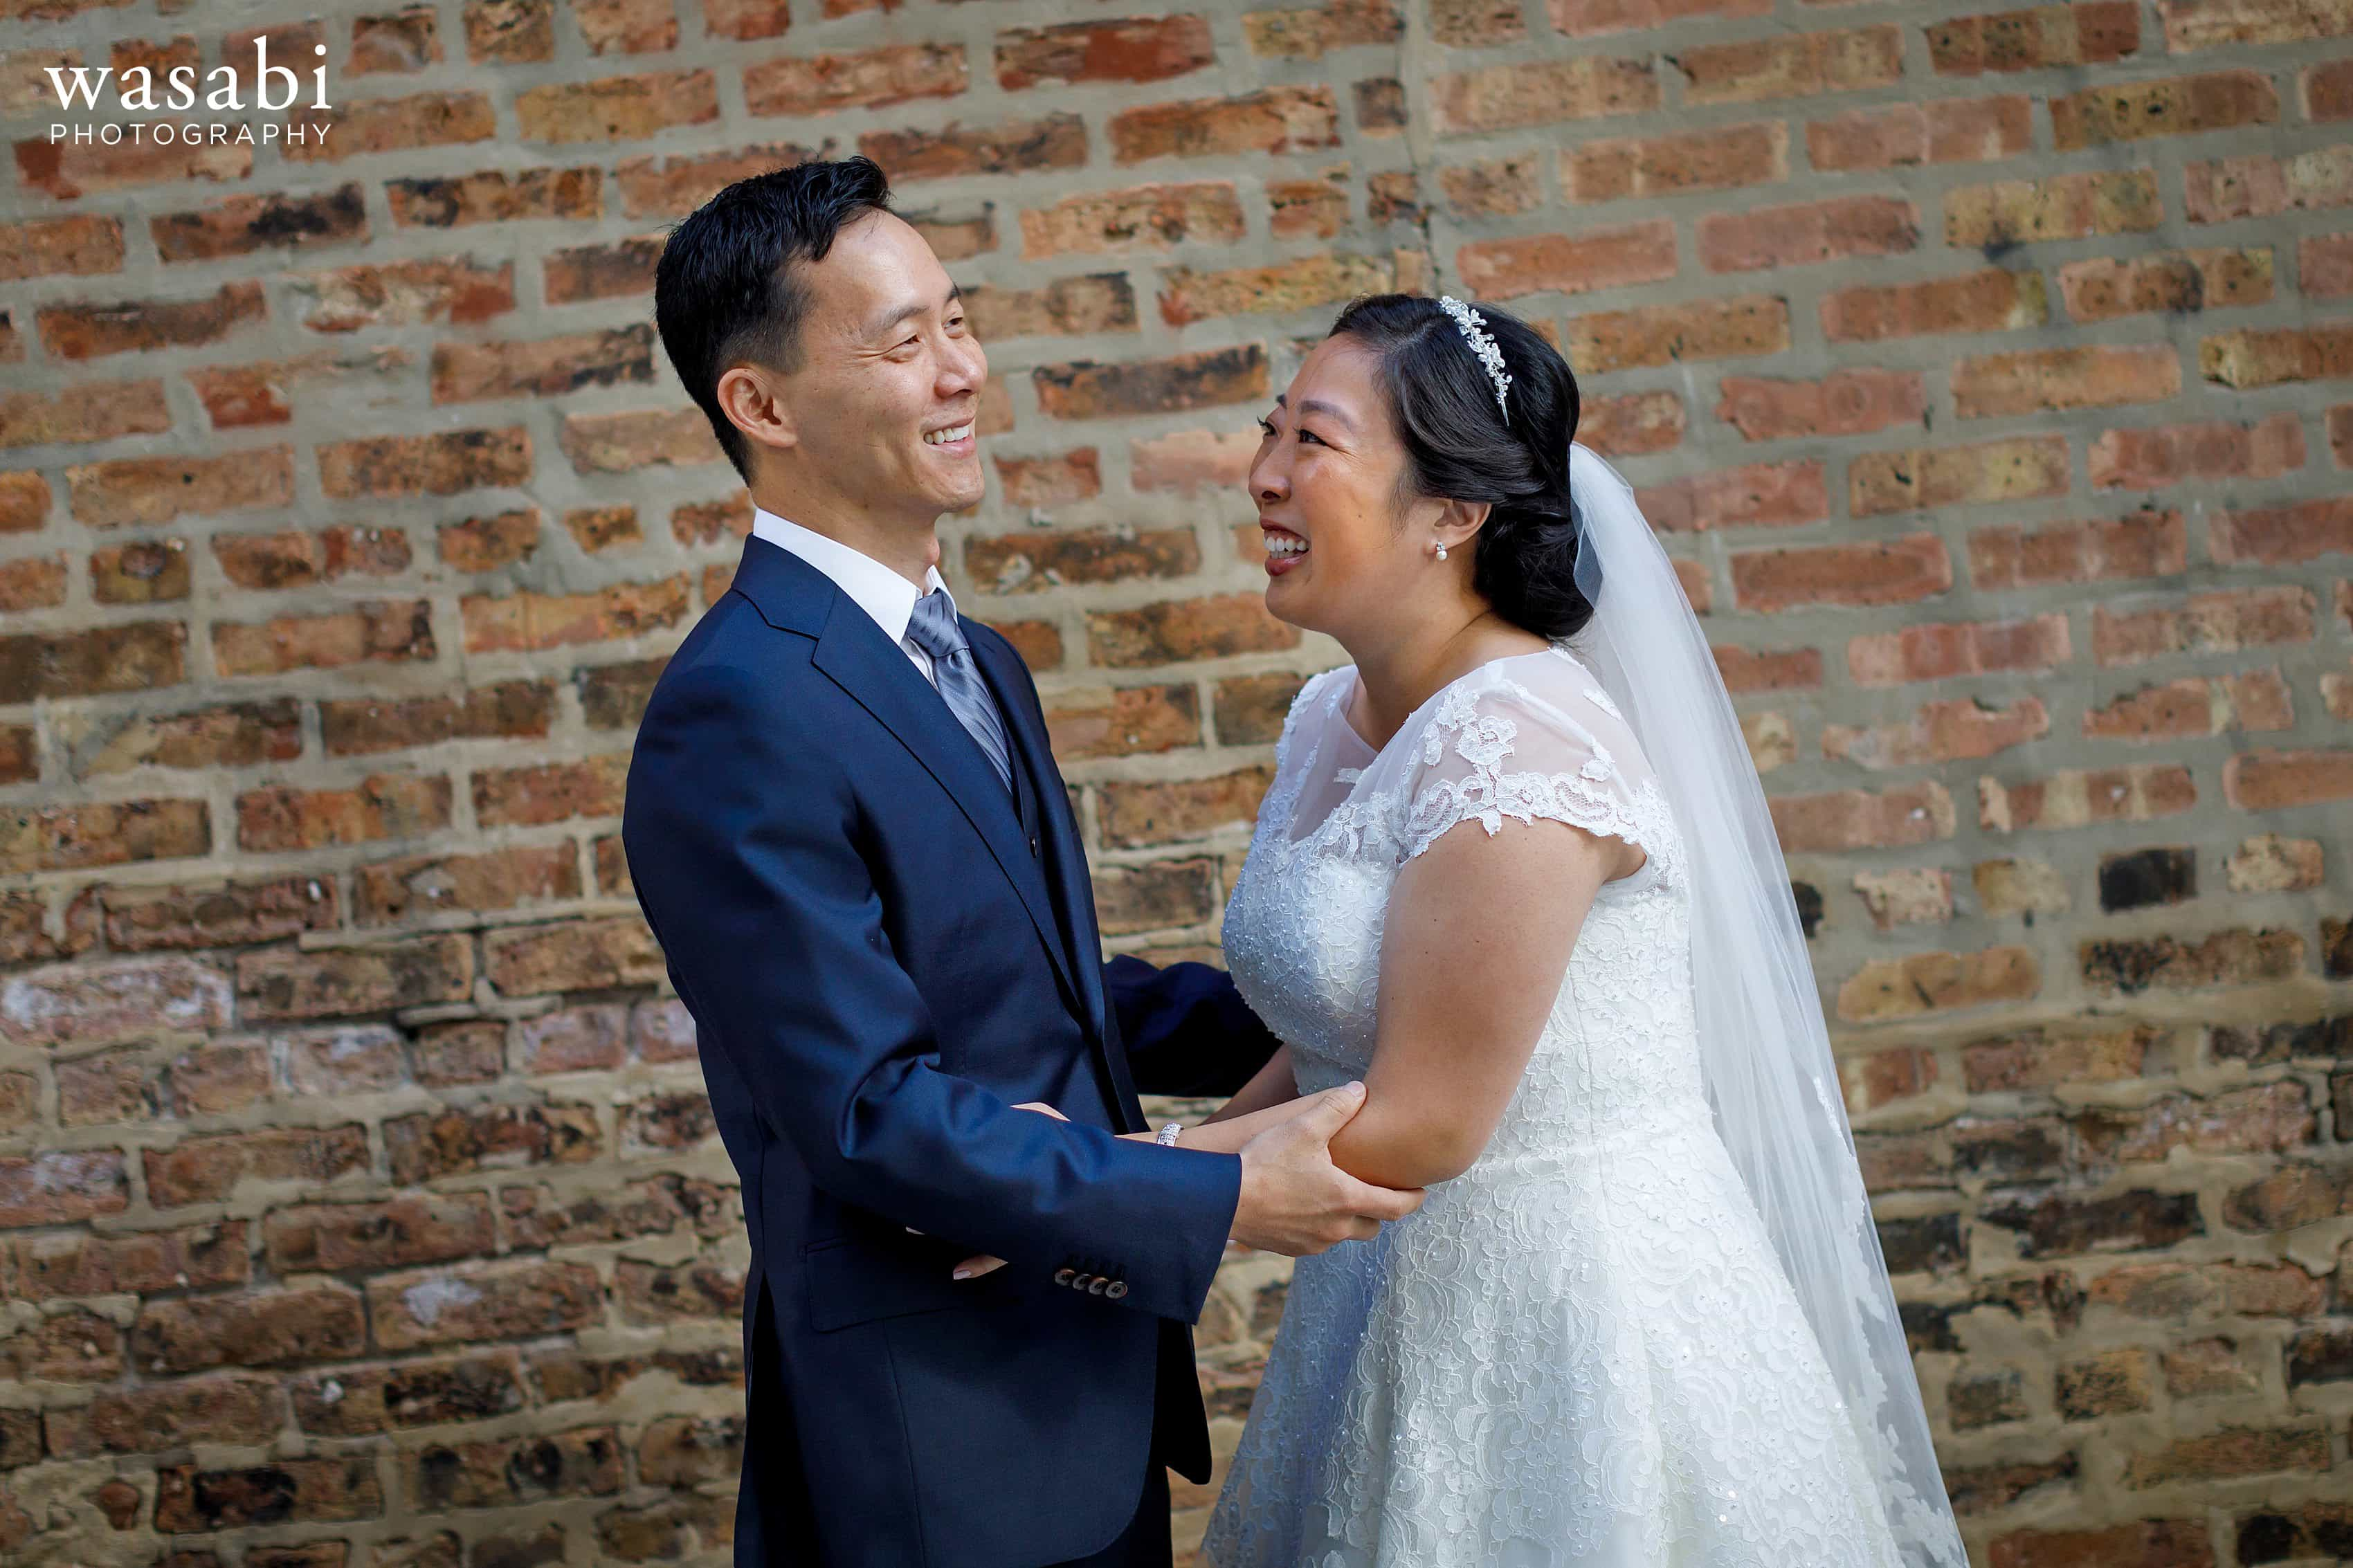 bride and groom laugh and smile during first look in alley with exposed brick wall in Chicago